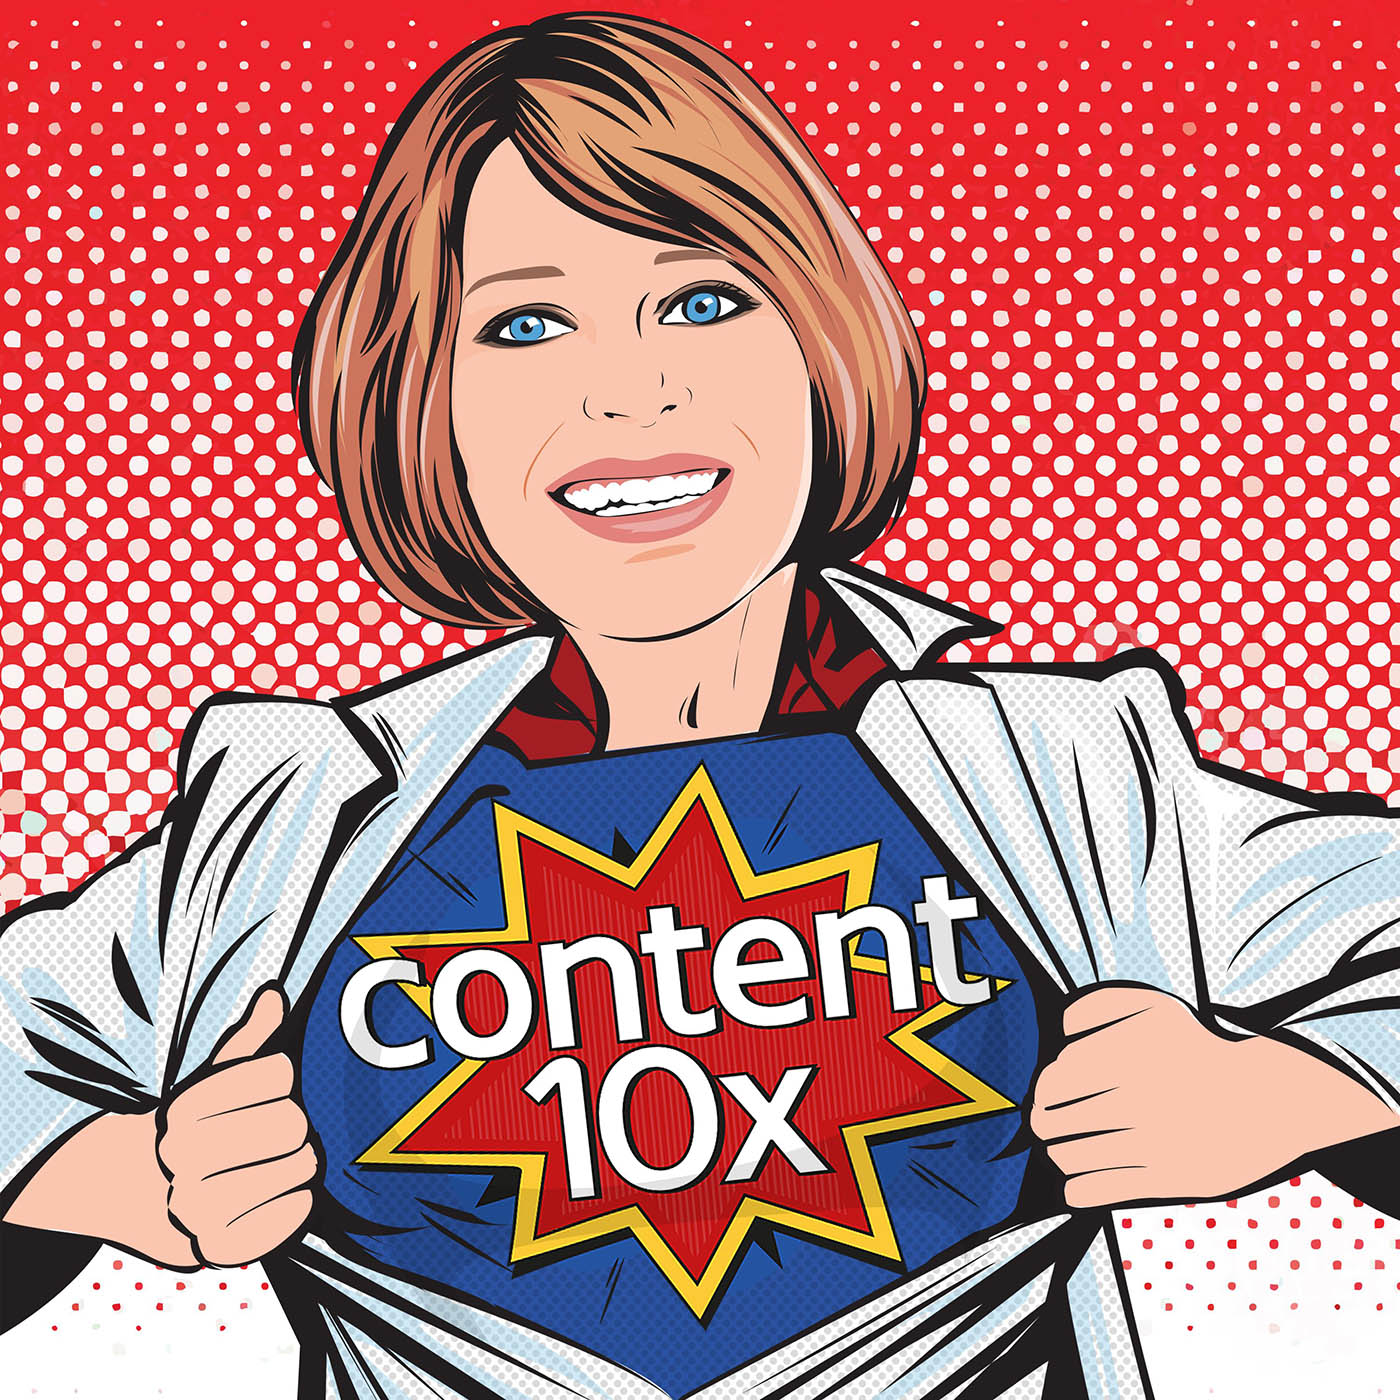 The content 10x podcast